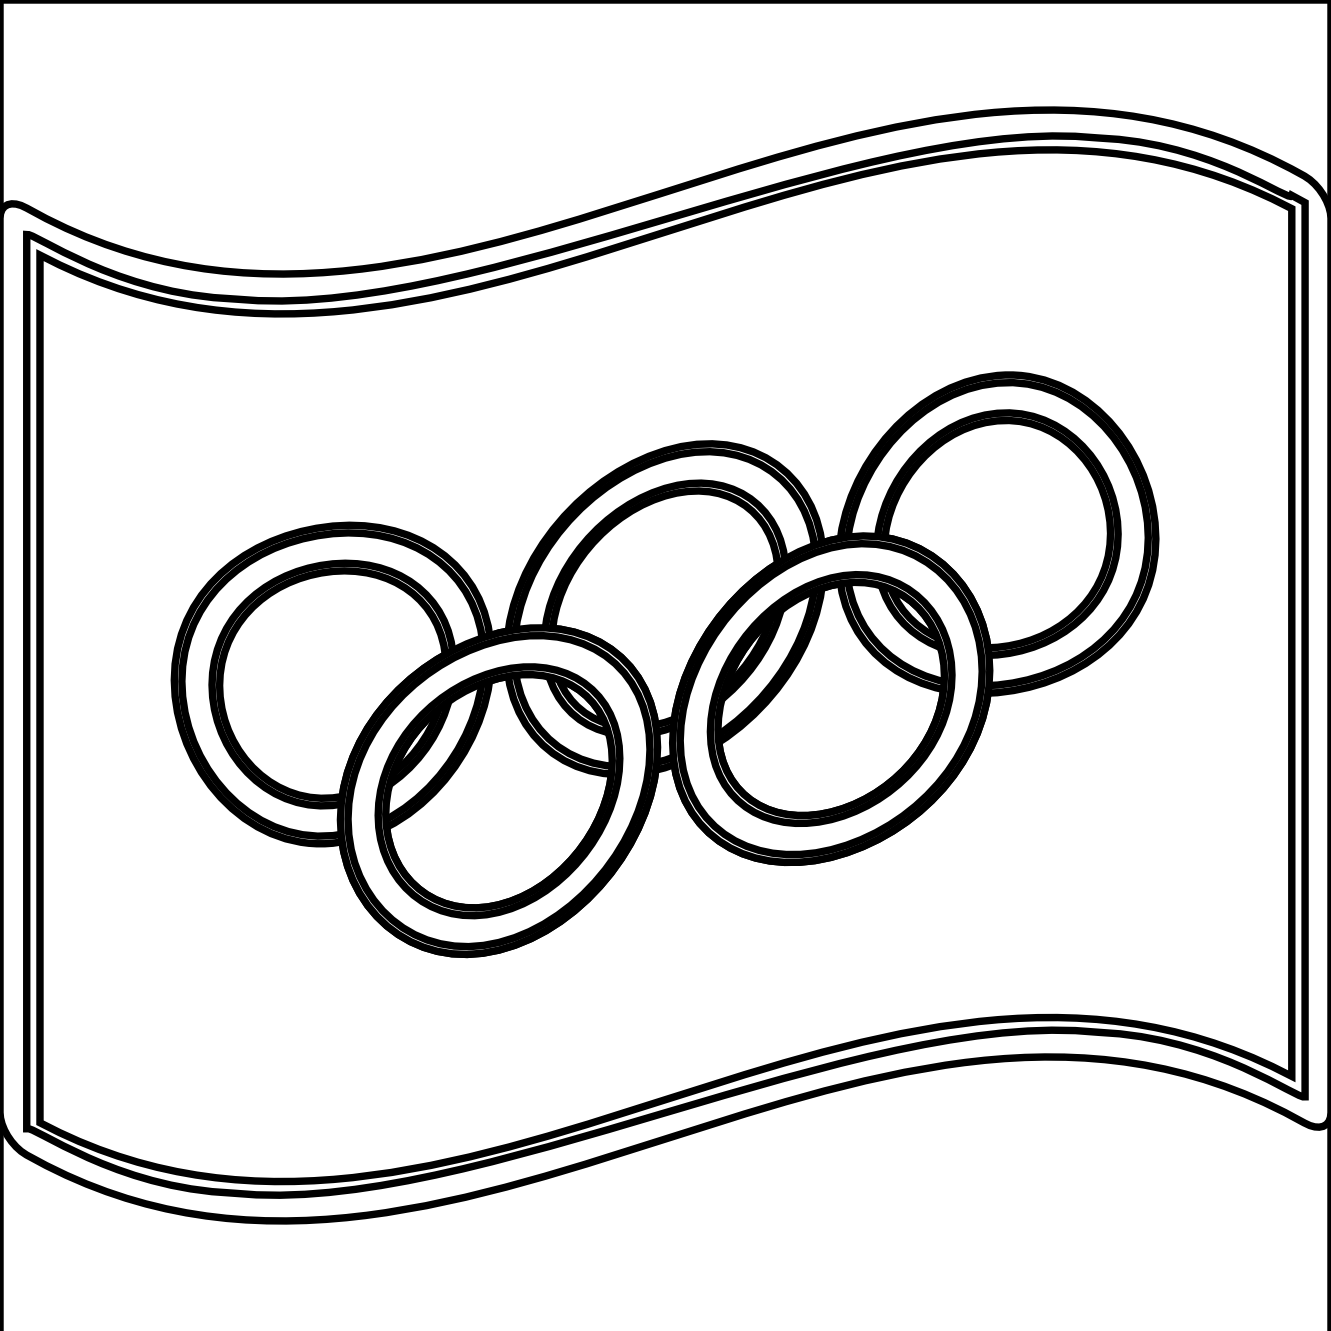 Winter Olympics Flags Coloring Pages Free